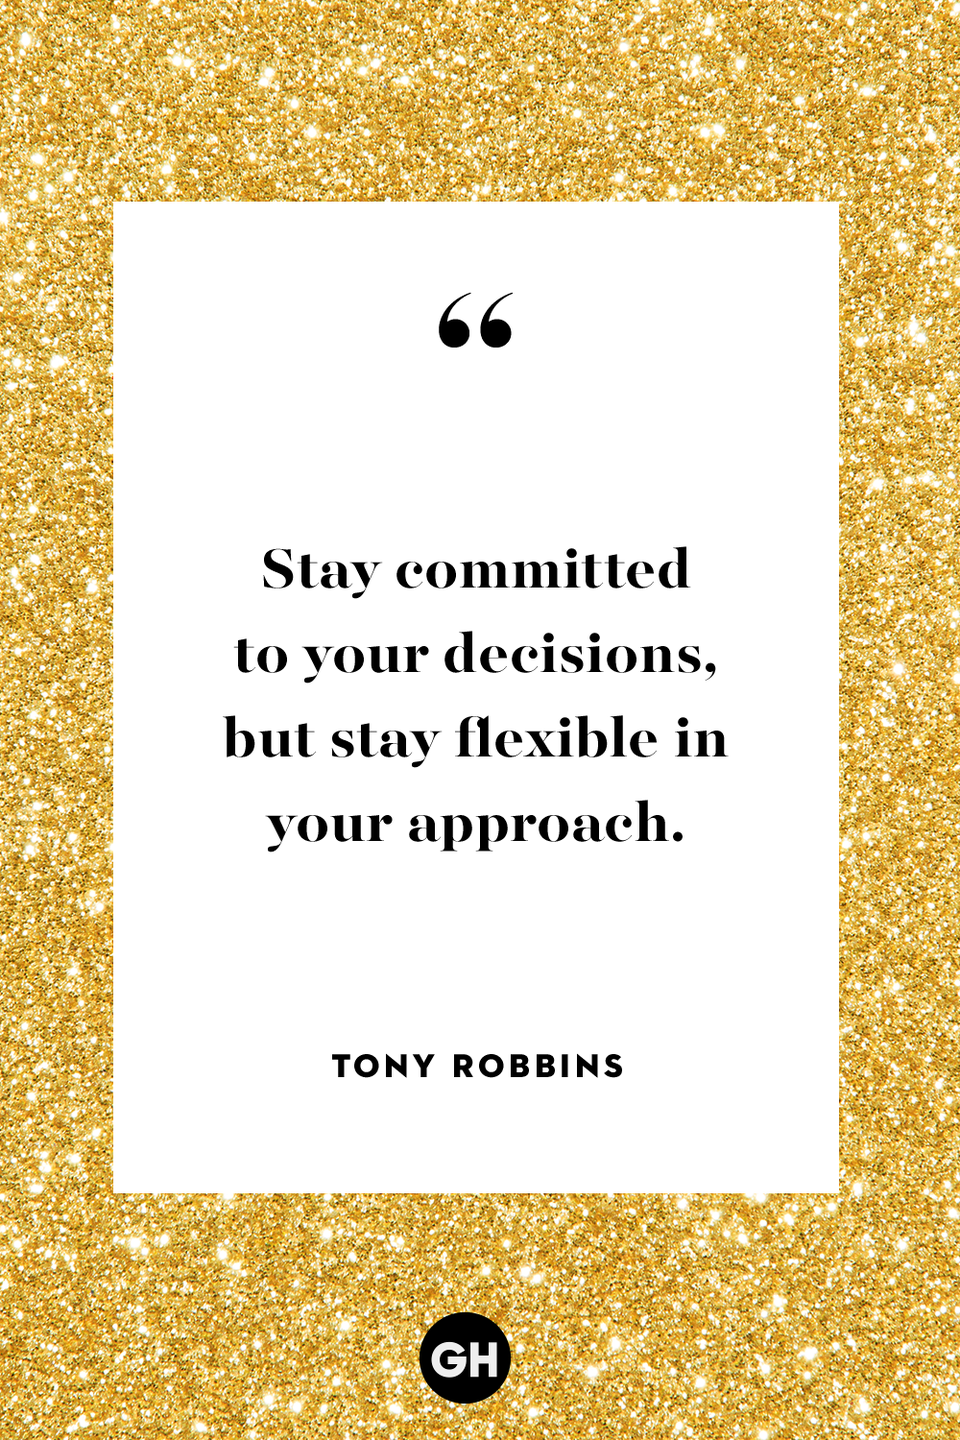 "<p>Stay committed to your decisions, but stay flexible in your approach.</p><p><strong>RELATED:</strong> <a href=""https://www.goodhousekeeping.com/holidays/g25620310/how-to-keep-new-years-resolutions-goals/"" rel=""nofollow noopener"" target=""_blank"" data-ylk=""slk:How to Actually Keep New Year's Resolutions, According to Real People"" class=""link rapid-noclick-resp"">How to Actually Keep New Year's Resolutions, According to Real People</a></p>"